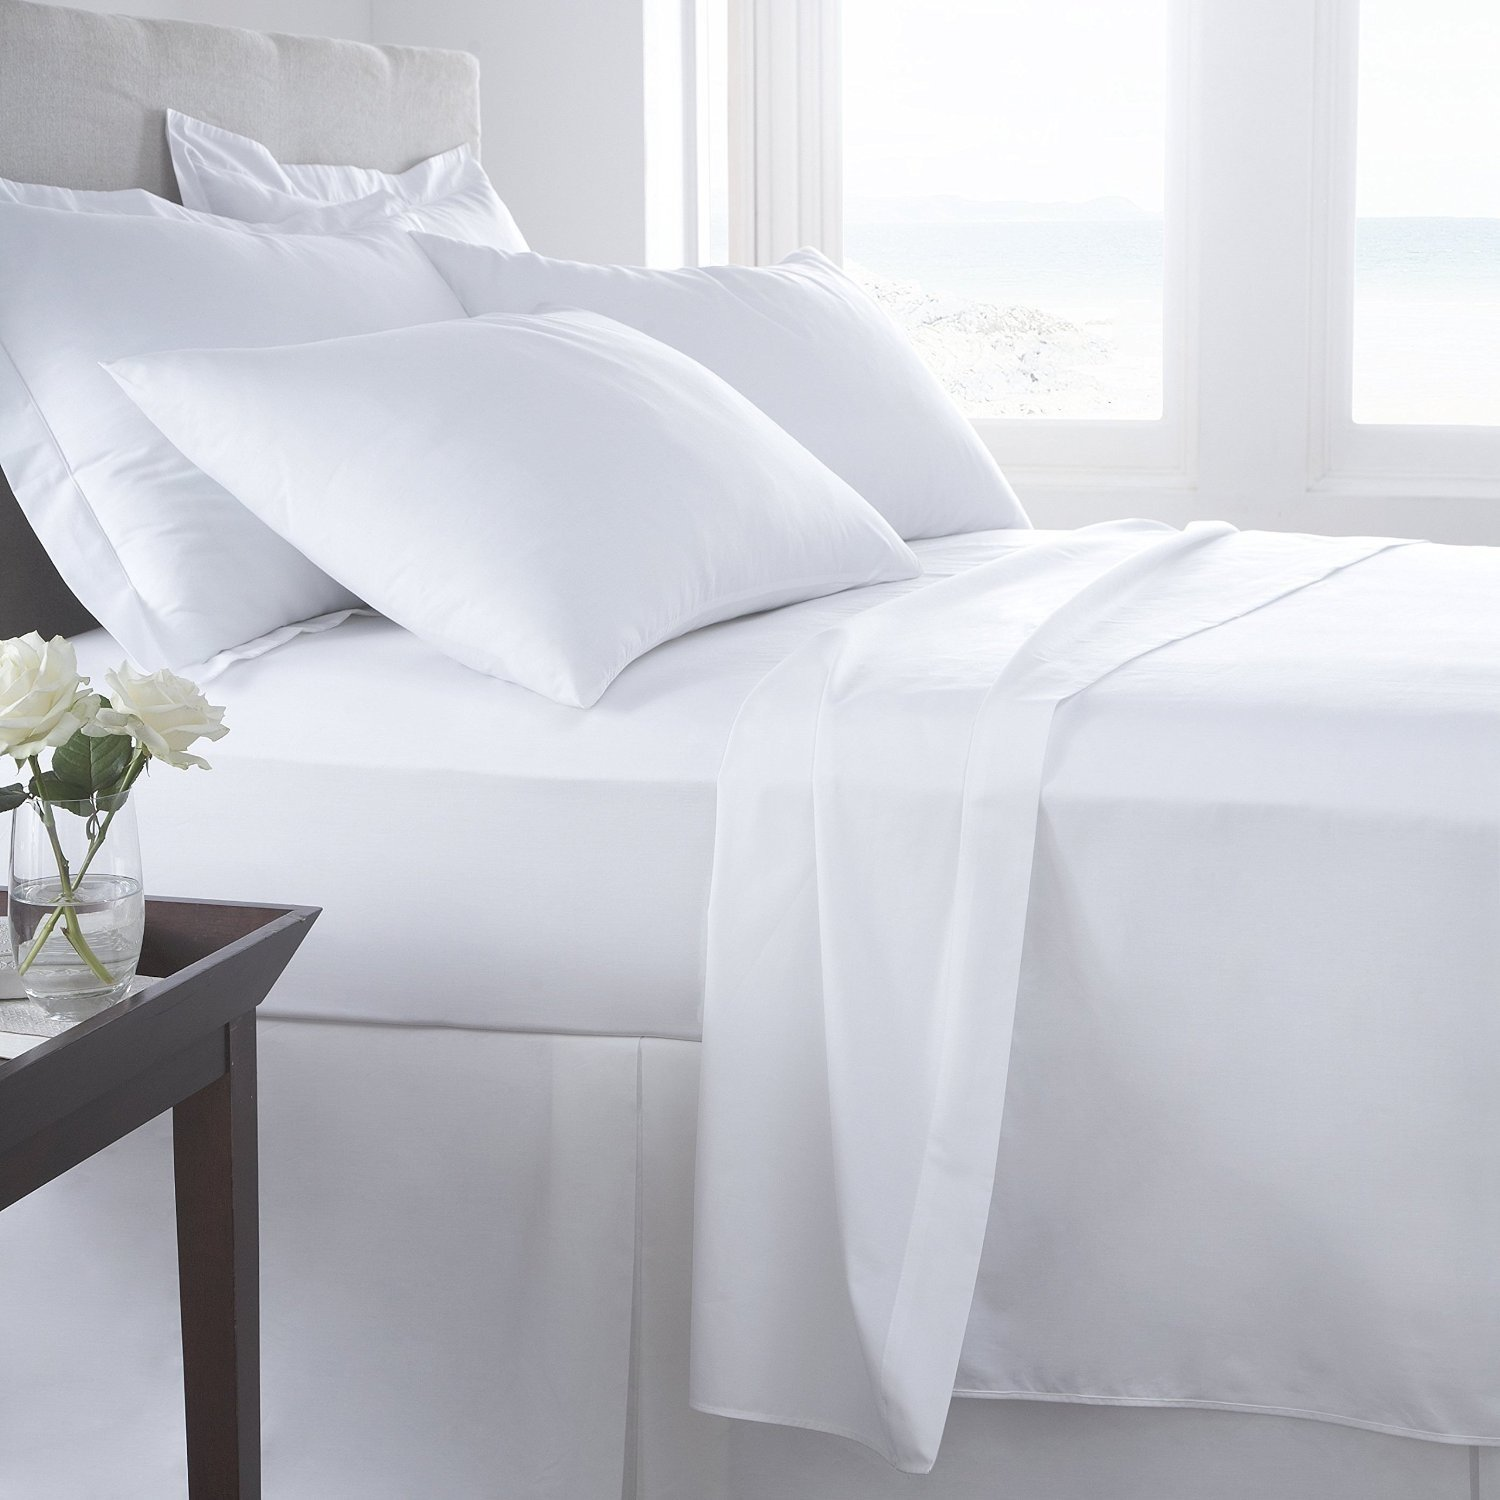 Fitted Sheets 100/% Cotton Combed Bed Sheets Single 4FT Double King Size Bedding